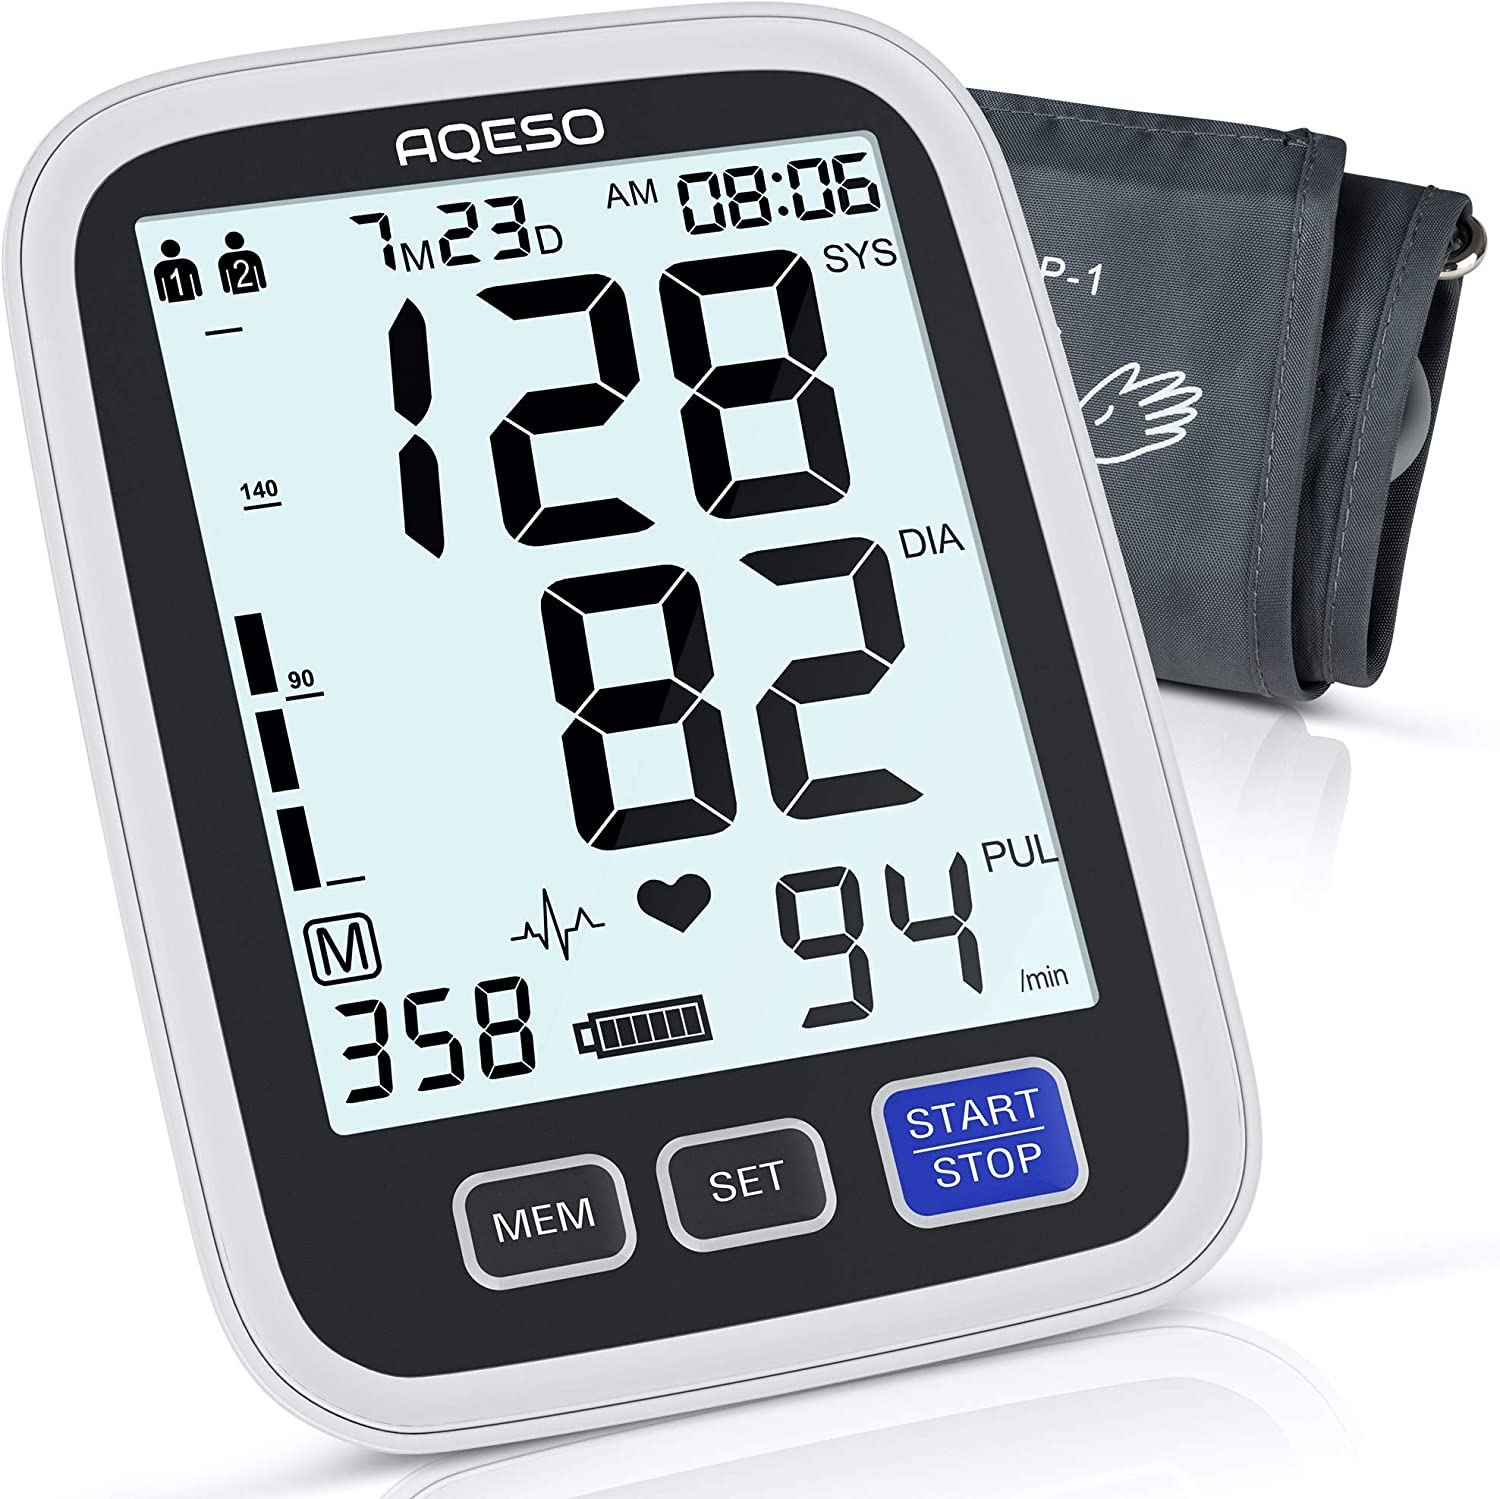 Blood Pressure Monitor Upper Arm - AQESO Automatic Digital BP Machine for Home Use, Large Cuff 9-17 in, Pulse Rate Meter, Clinically Accurate & Fast Reading, 2x500 Memory, Large Display w/Backlit